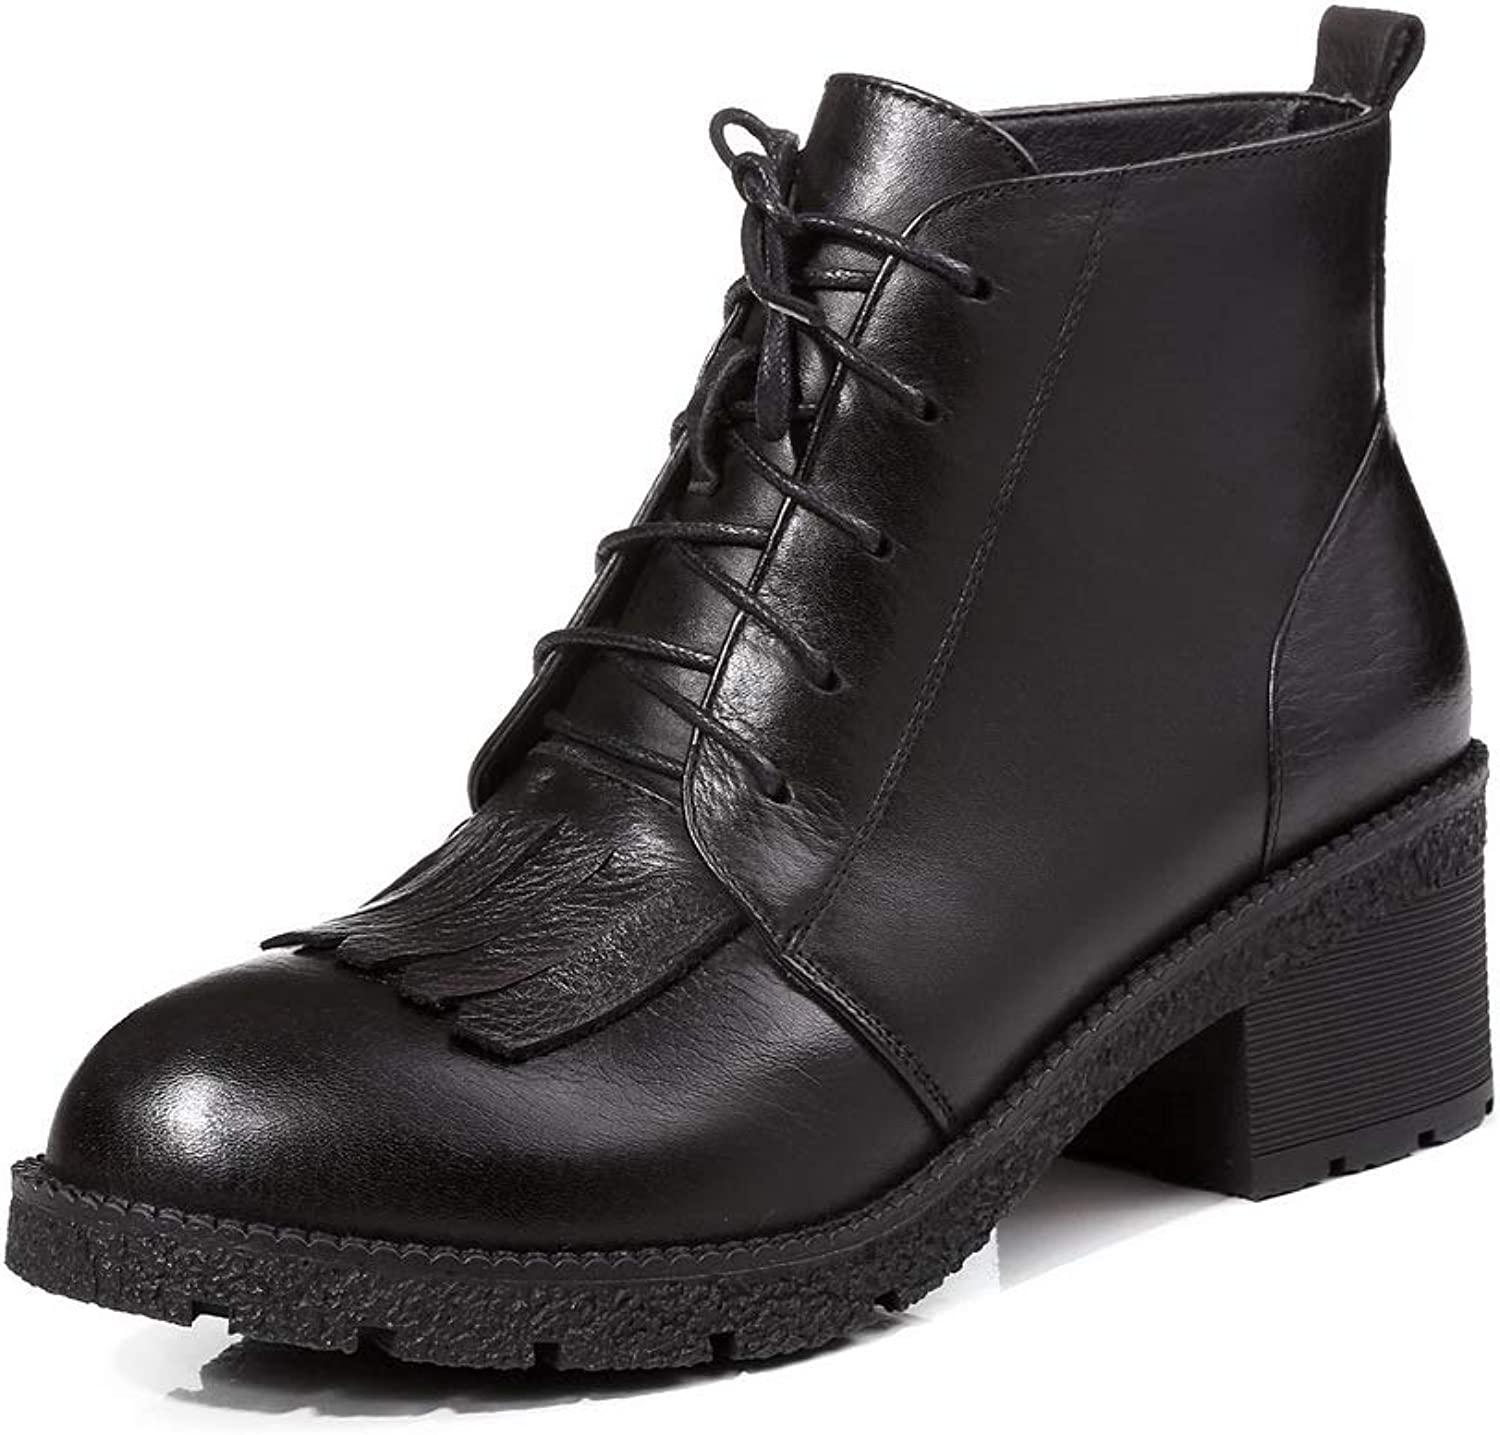 AdeeSu Womens Travel Warm Lining Solid Leather Boots SXE05175